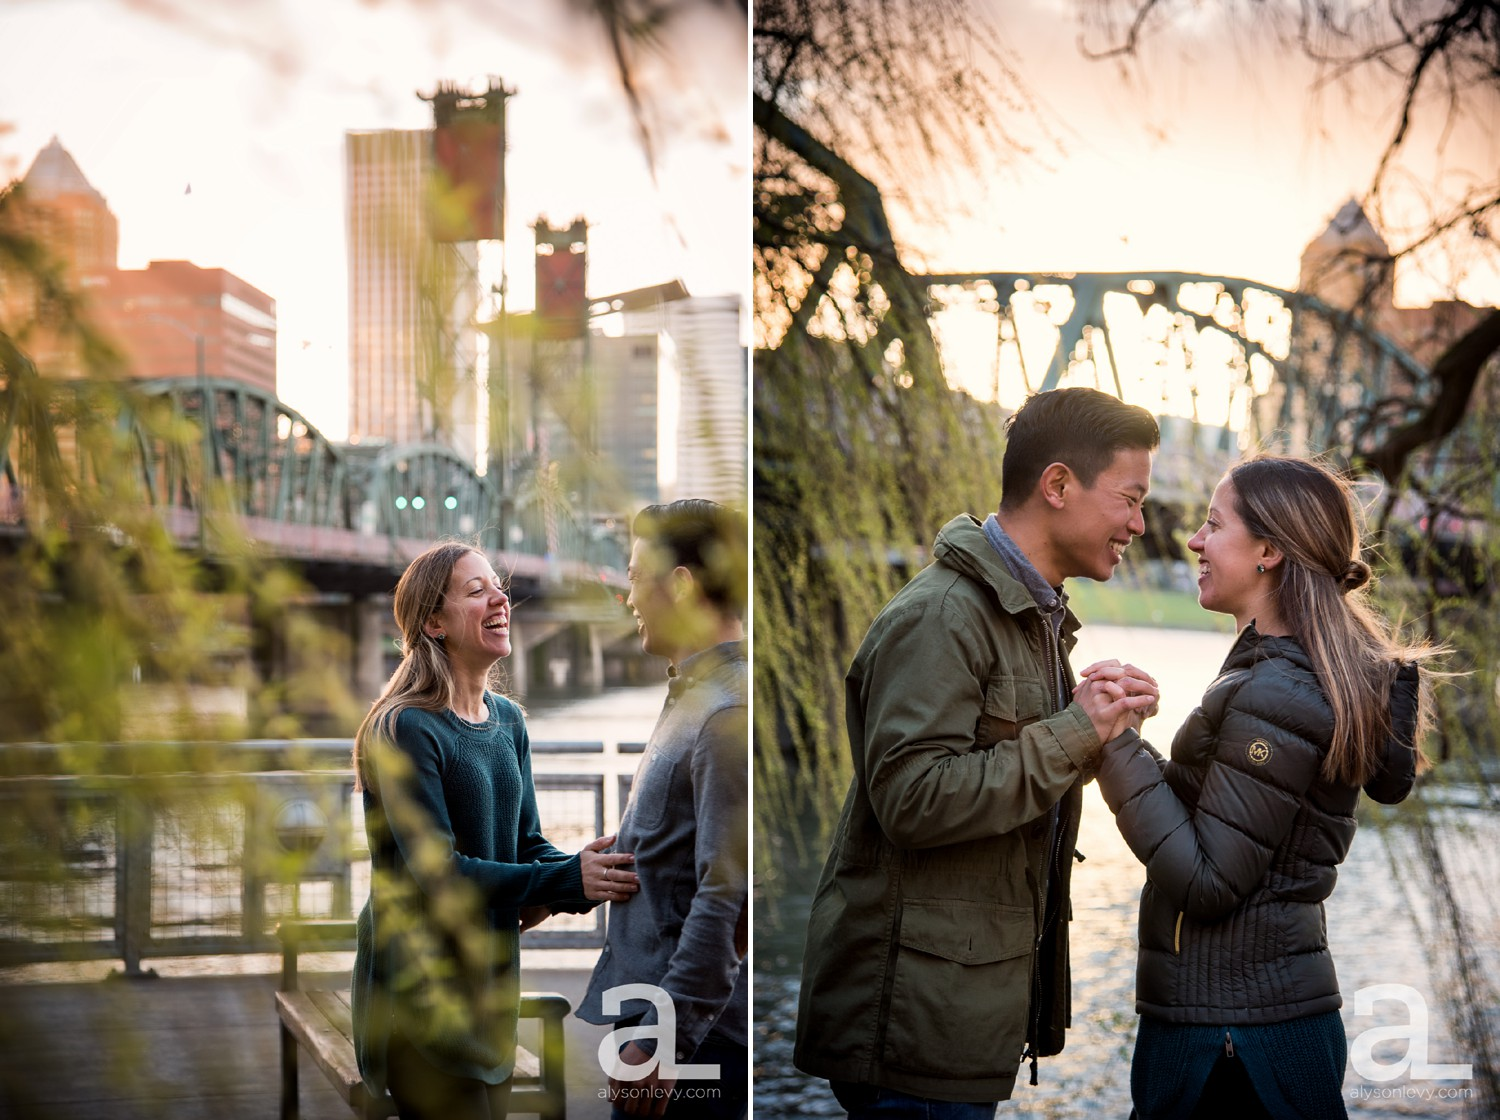 Portland-Tilikum-Bridge-Proposal-Engagement-Photography_0015.jpg